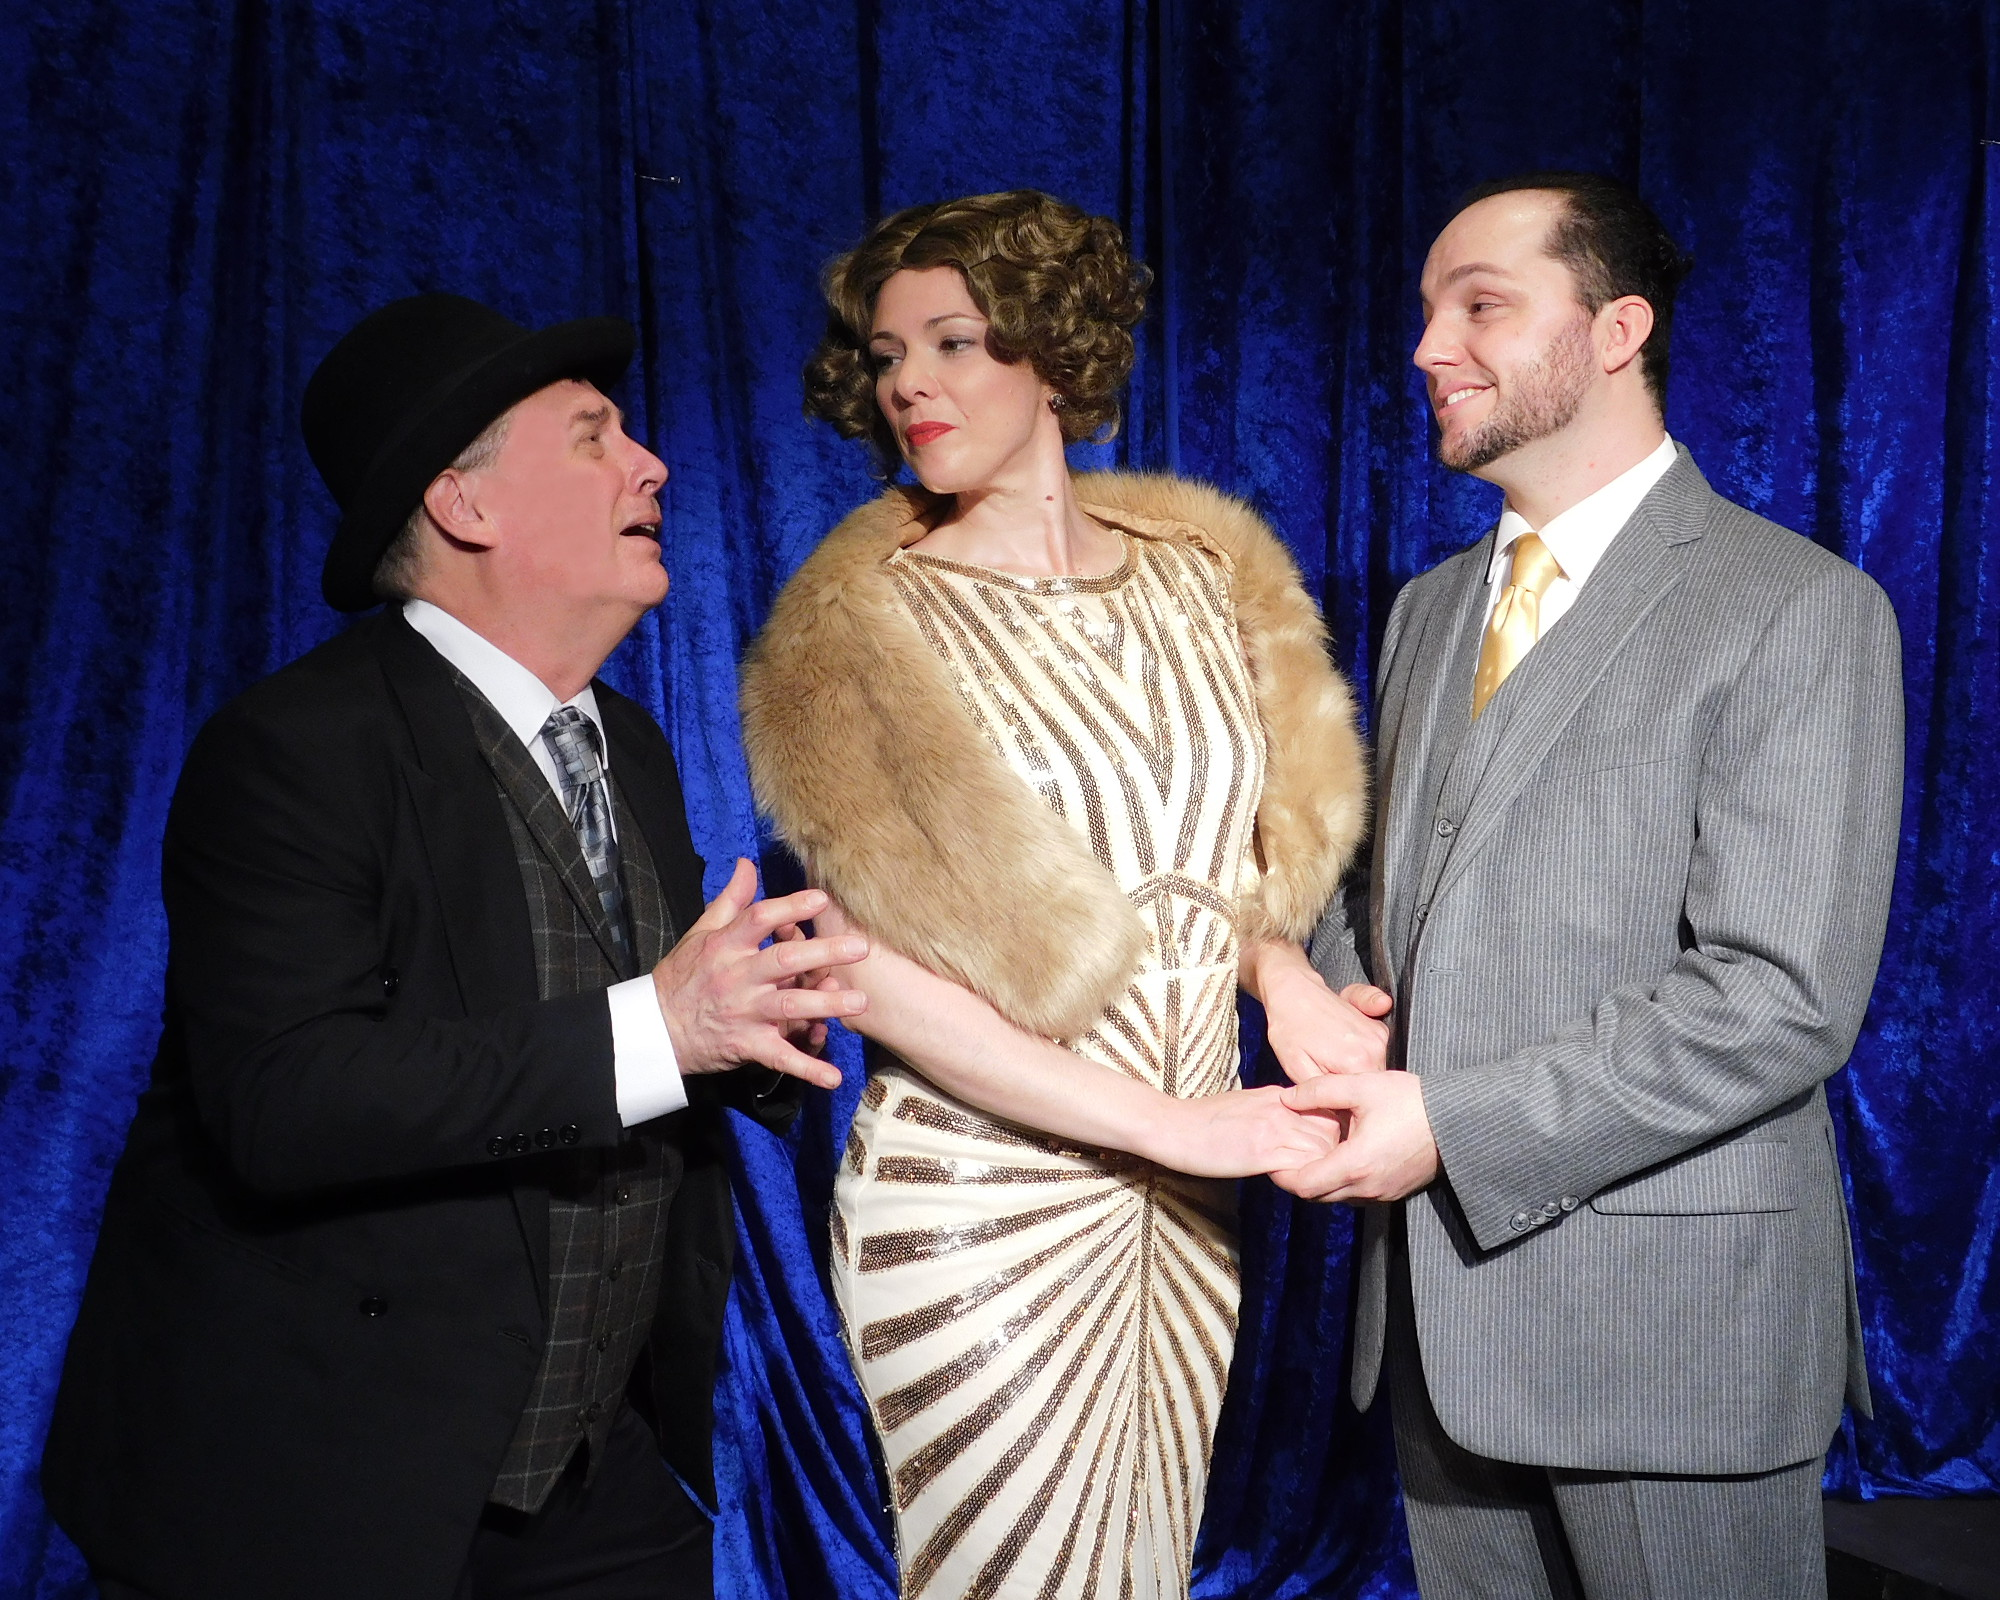 """FELDZIEG: """"Janet, I am begging you! Dump the mug. I'll give you anything you want. I'll put your name above mine on the marquee!""""   Victor Feldzieg (Charles Evans), Janet Van De Graaff (Minna Rogers) and Robert Martin (James Schott) in Landmark Musical Theatre's upcoming production of the Tony Award-winning musical   The Drowsy Chaperone  ."""